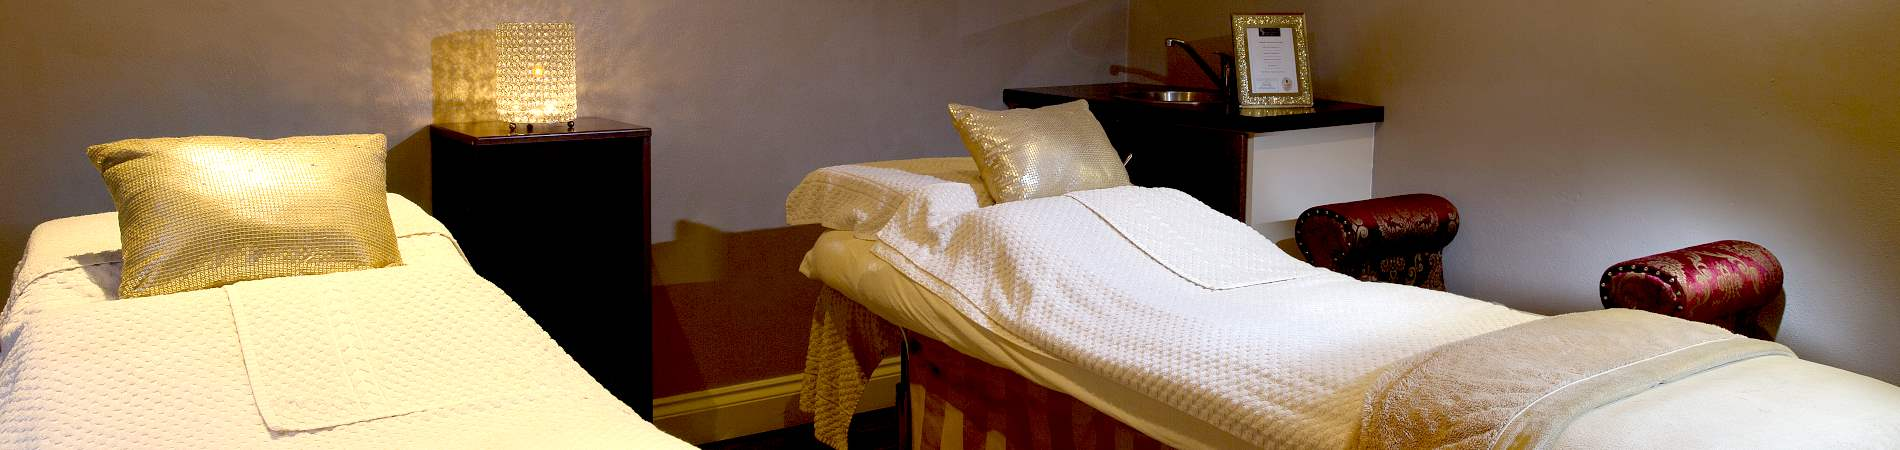 Serenity Spa Treatment Rooms